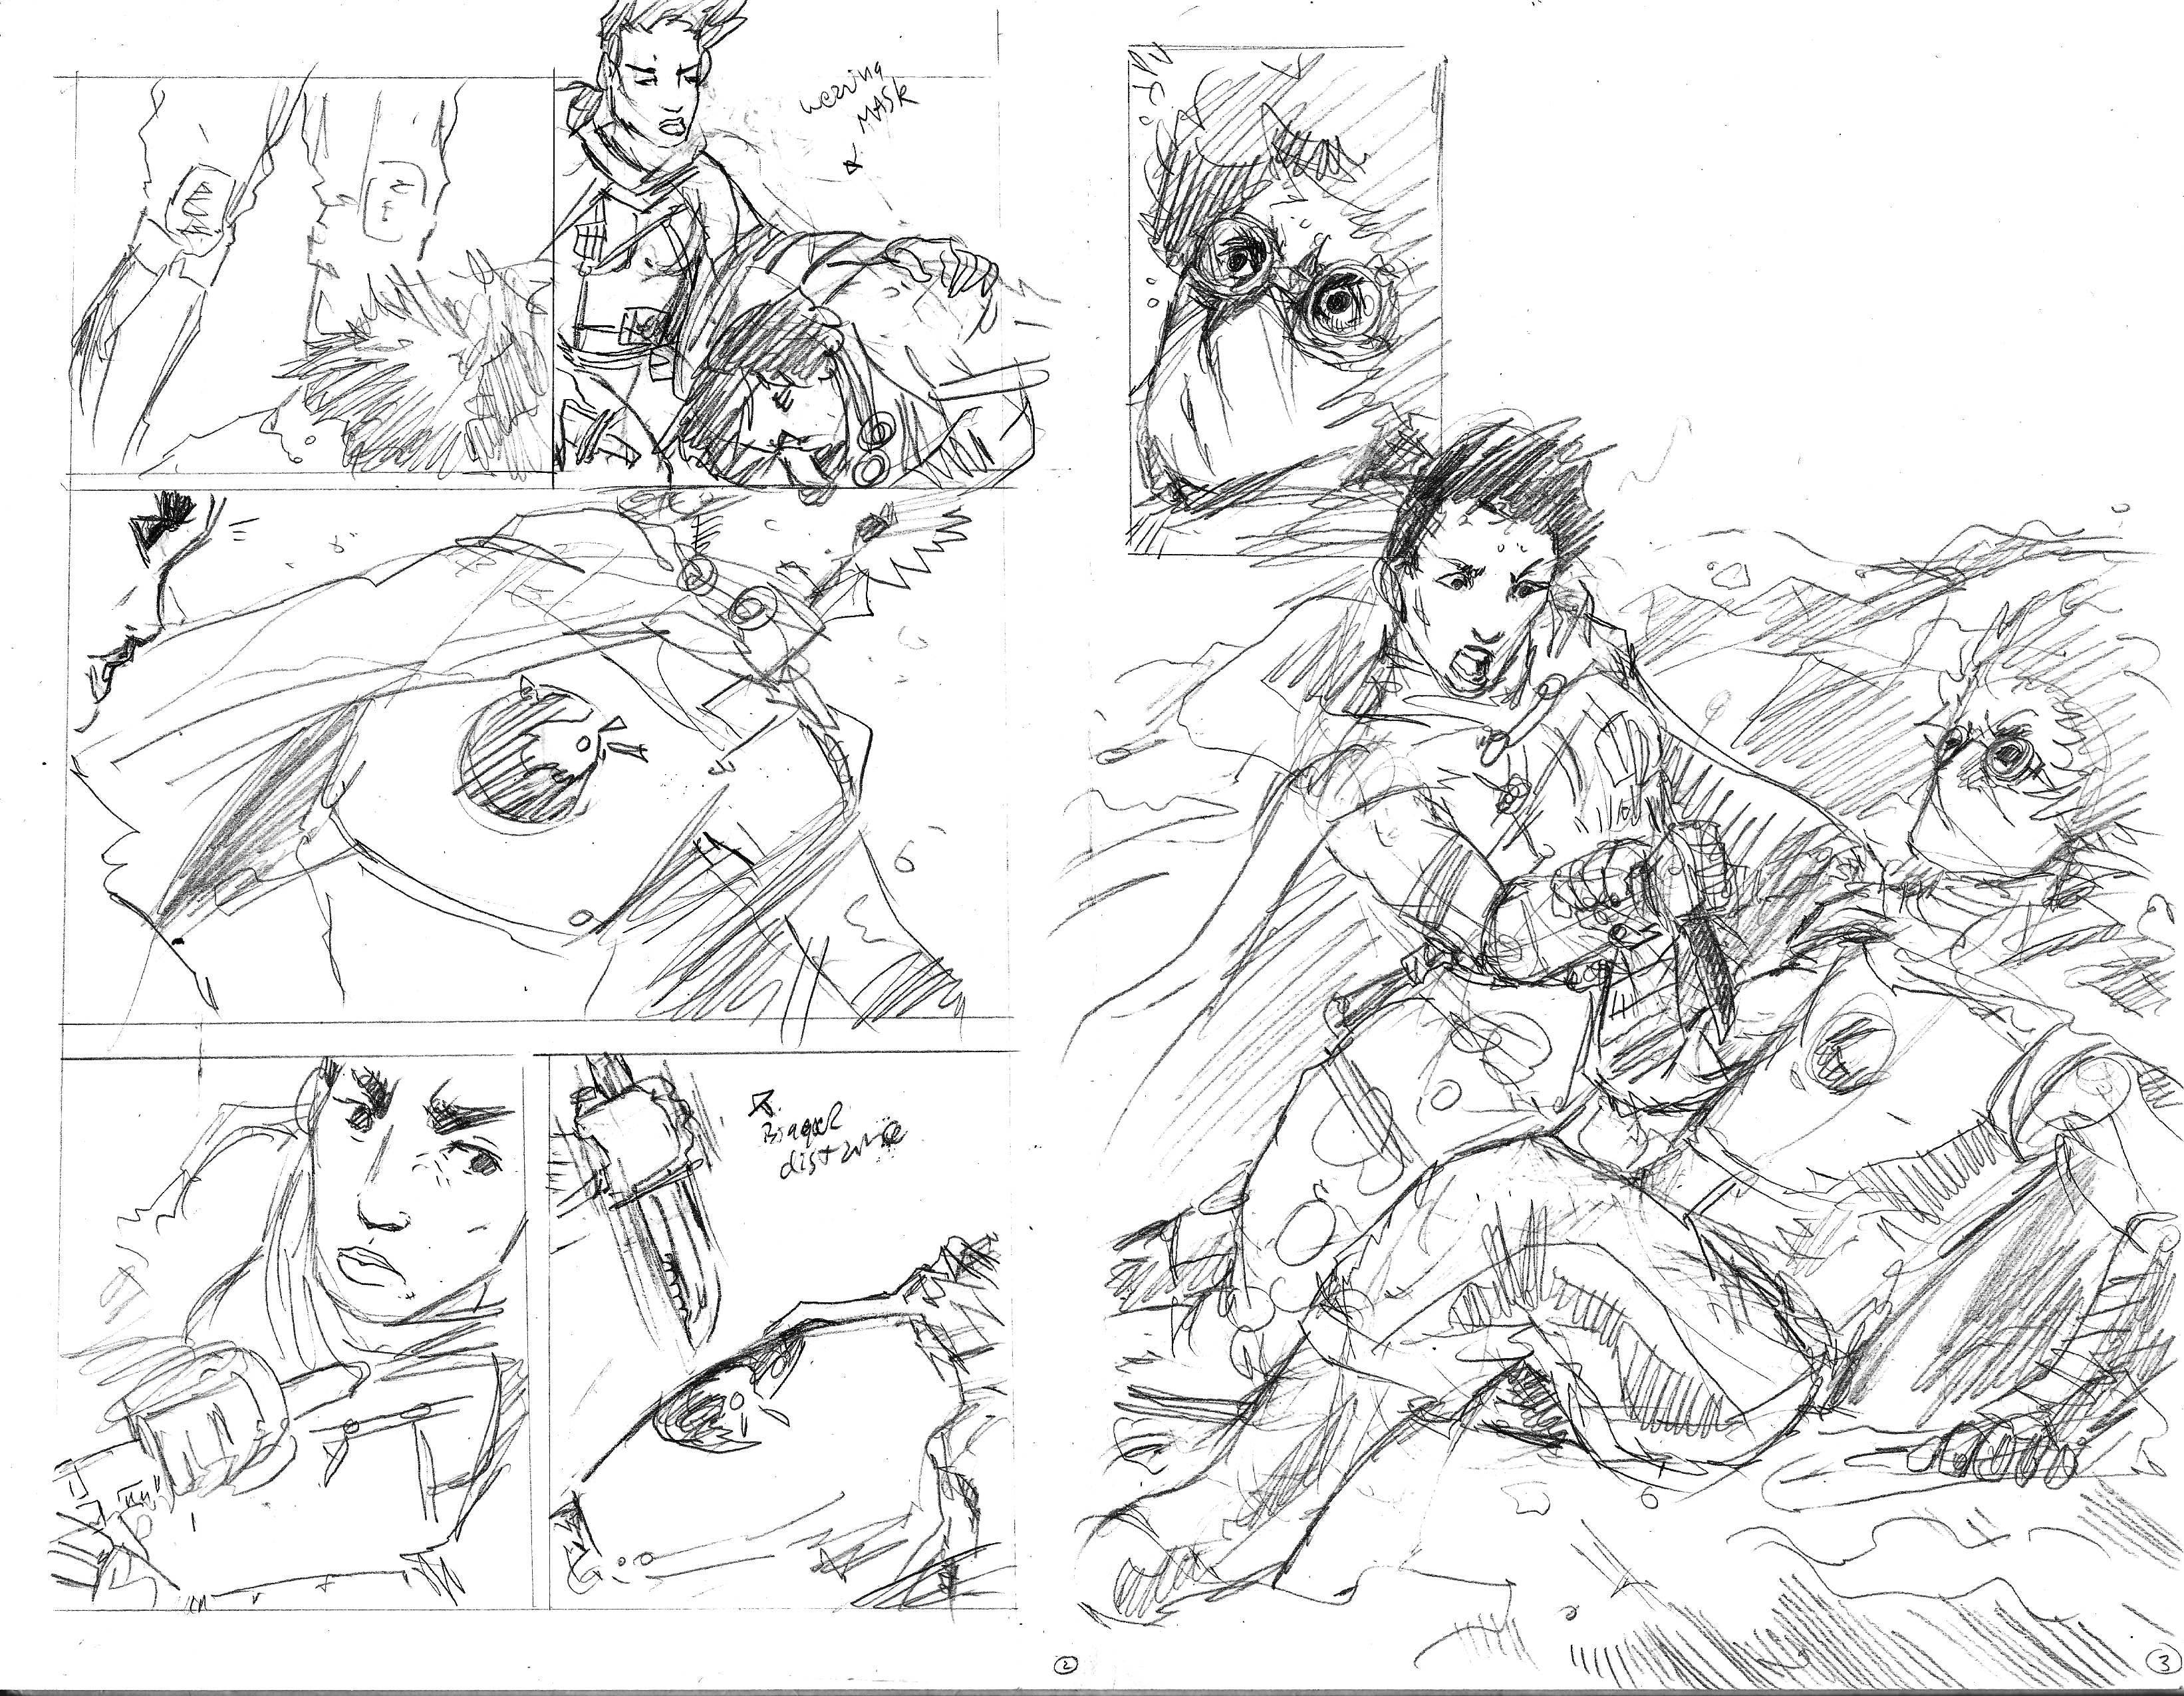 Pencil Pages 2 and 3